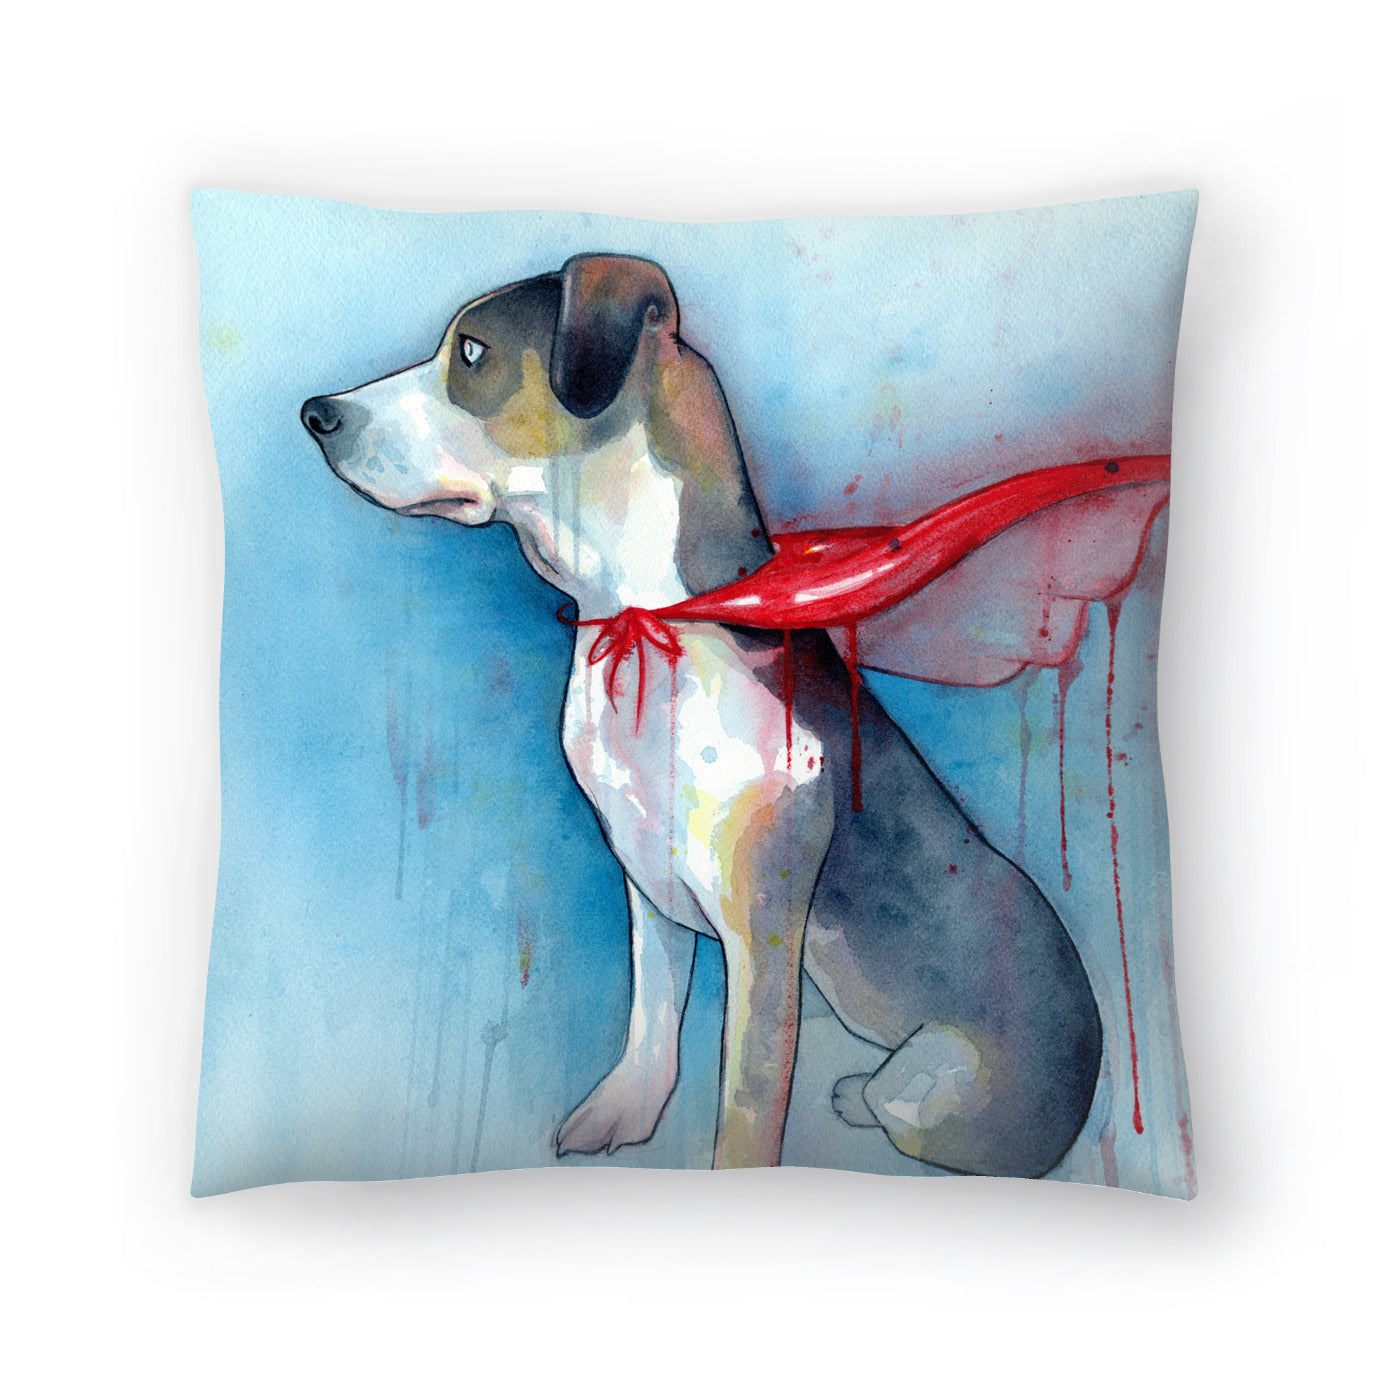 Super Dog by Sam Nagel Decorative Pillow - Decorative Pillow - Americanflat